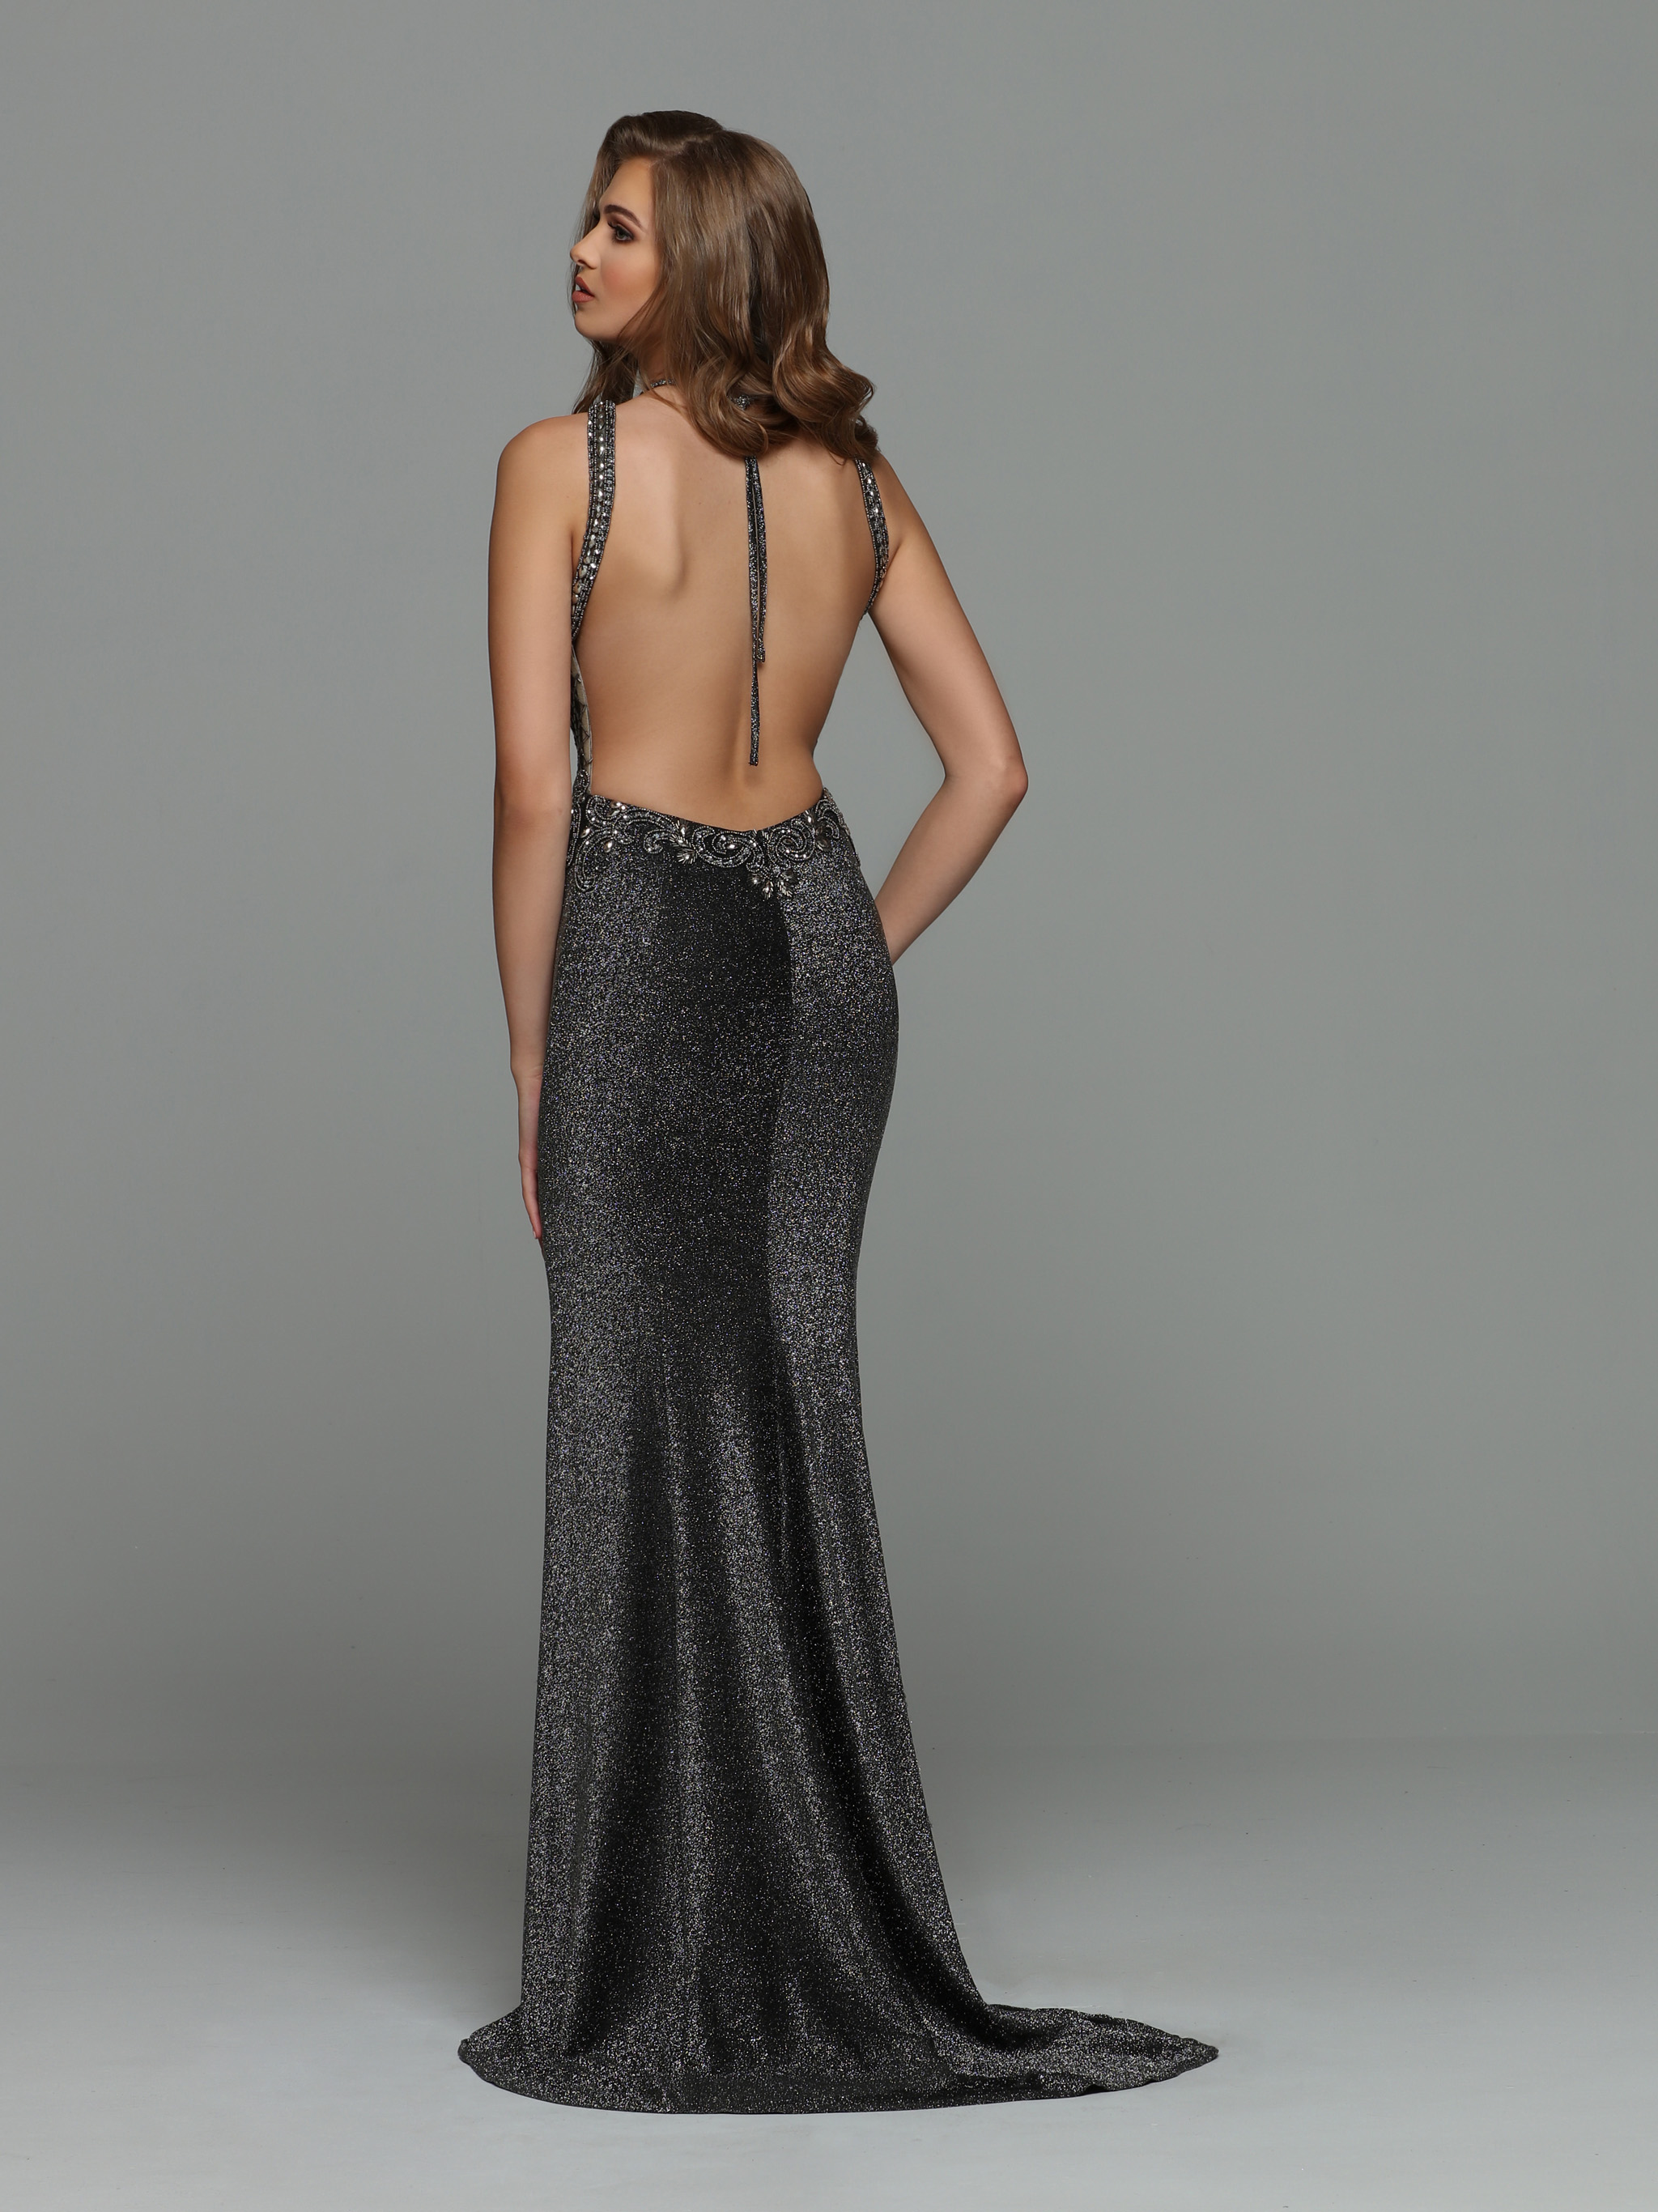 Image showing back view of style #71935